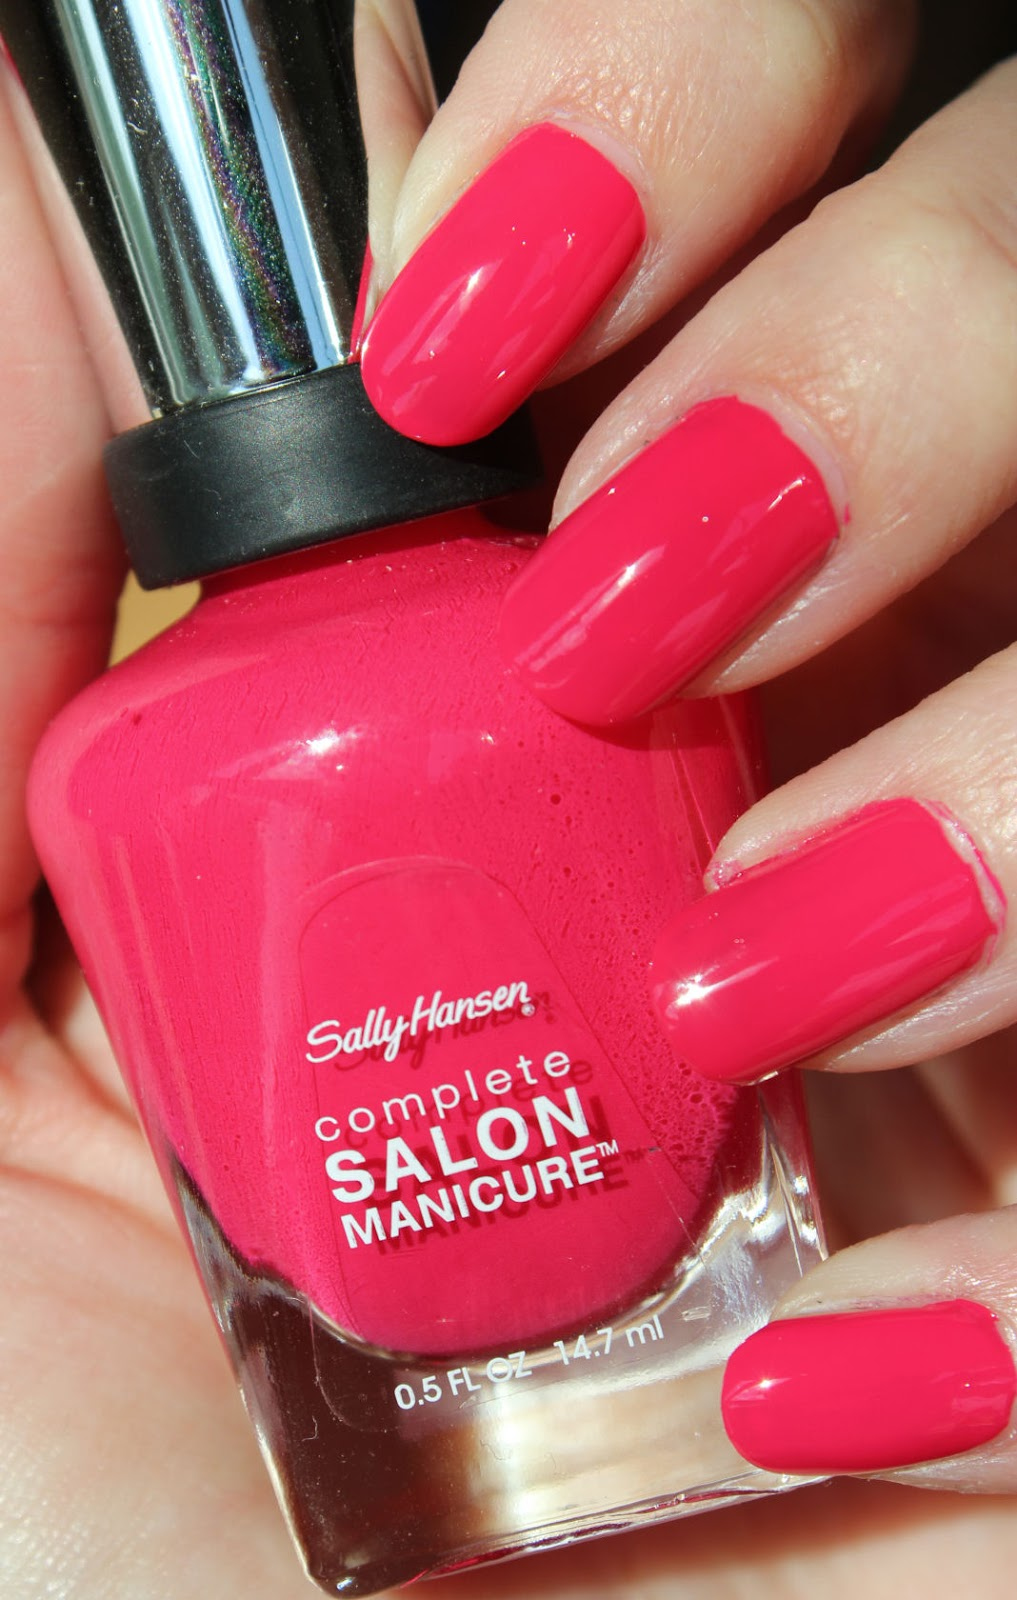 http://lacquediction.blogspot.de/2014/08/sally-hansen-535-tickle-me-pink.html